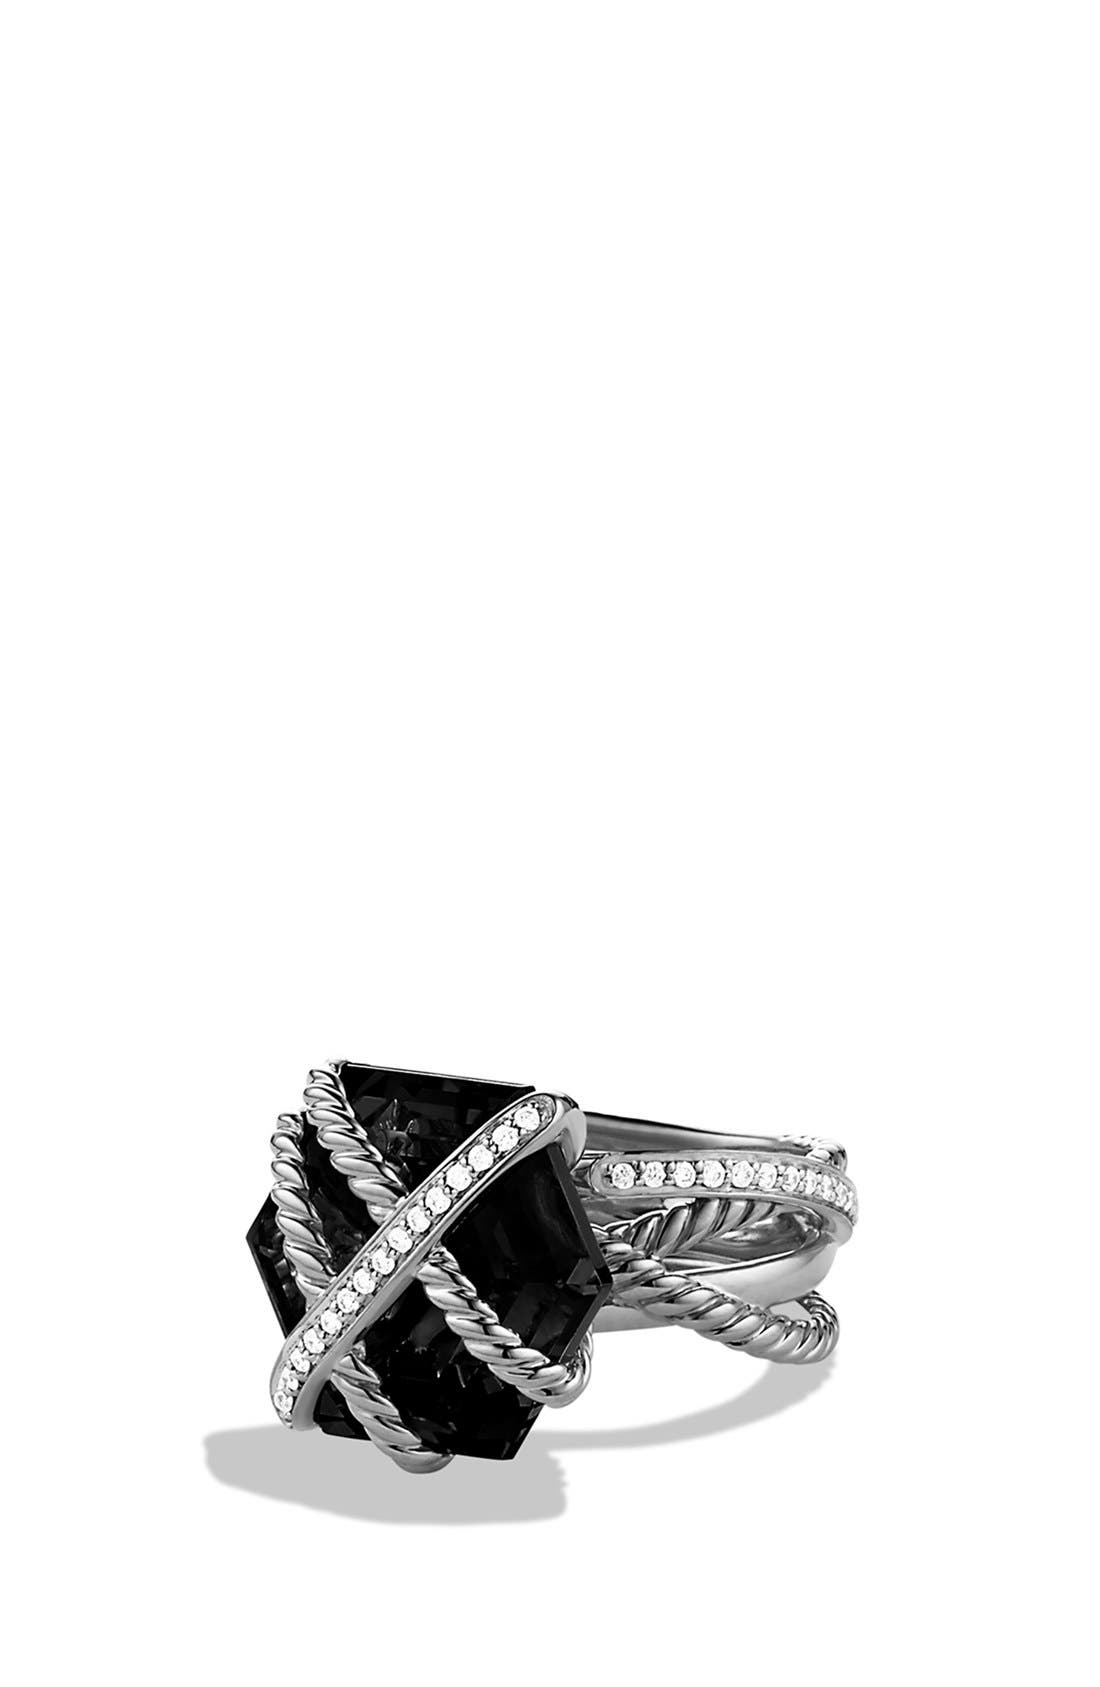 DAVID YURMAN 'Cable Wrap' Ring with Black Onyx and Diamonds, Main, color, 001